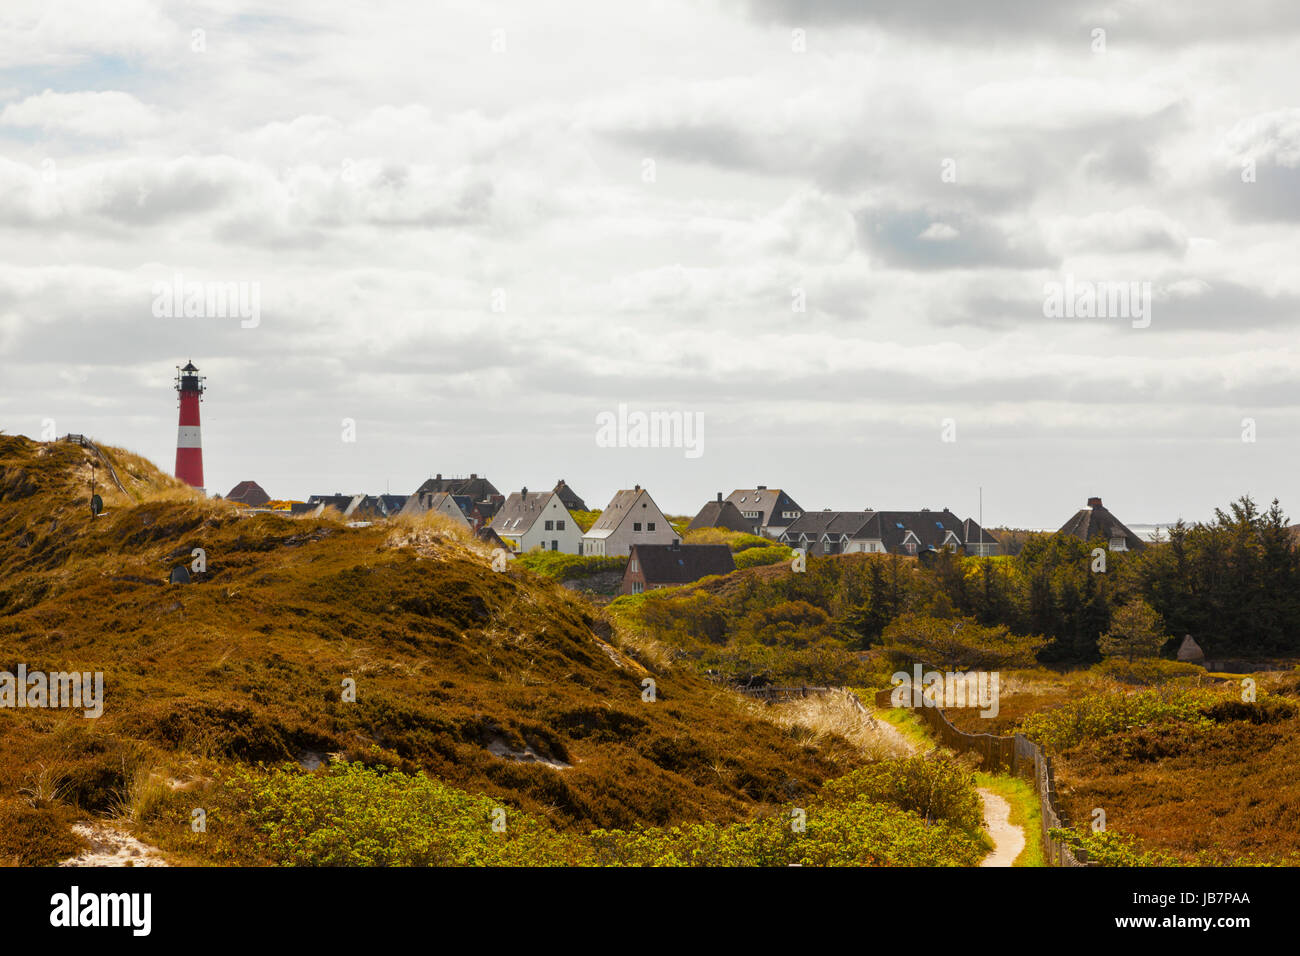 Sylt, village and lighthouse of Hörnum Stock Photo